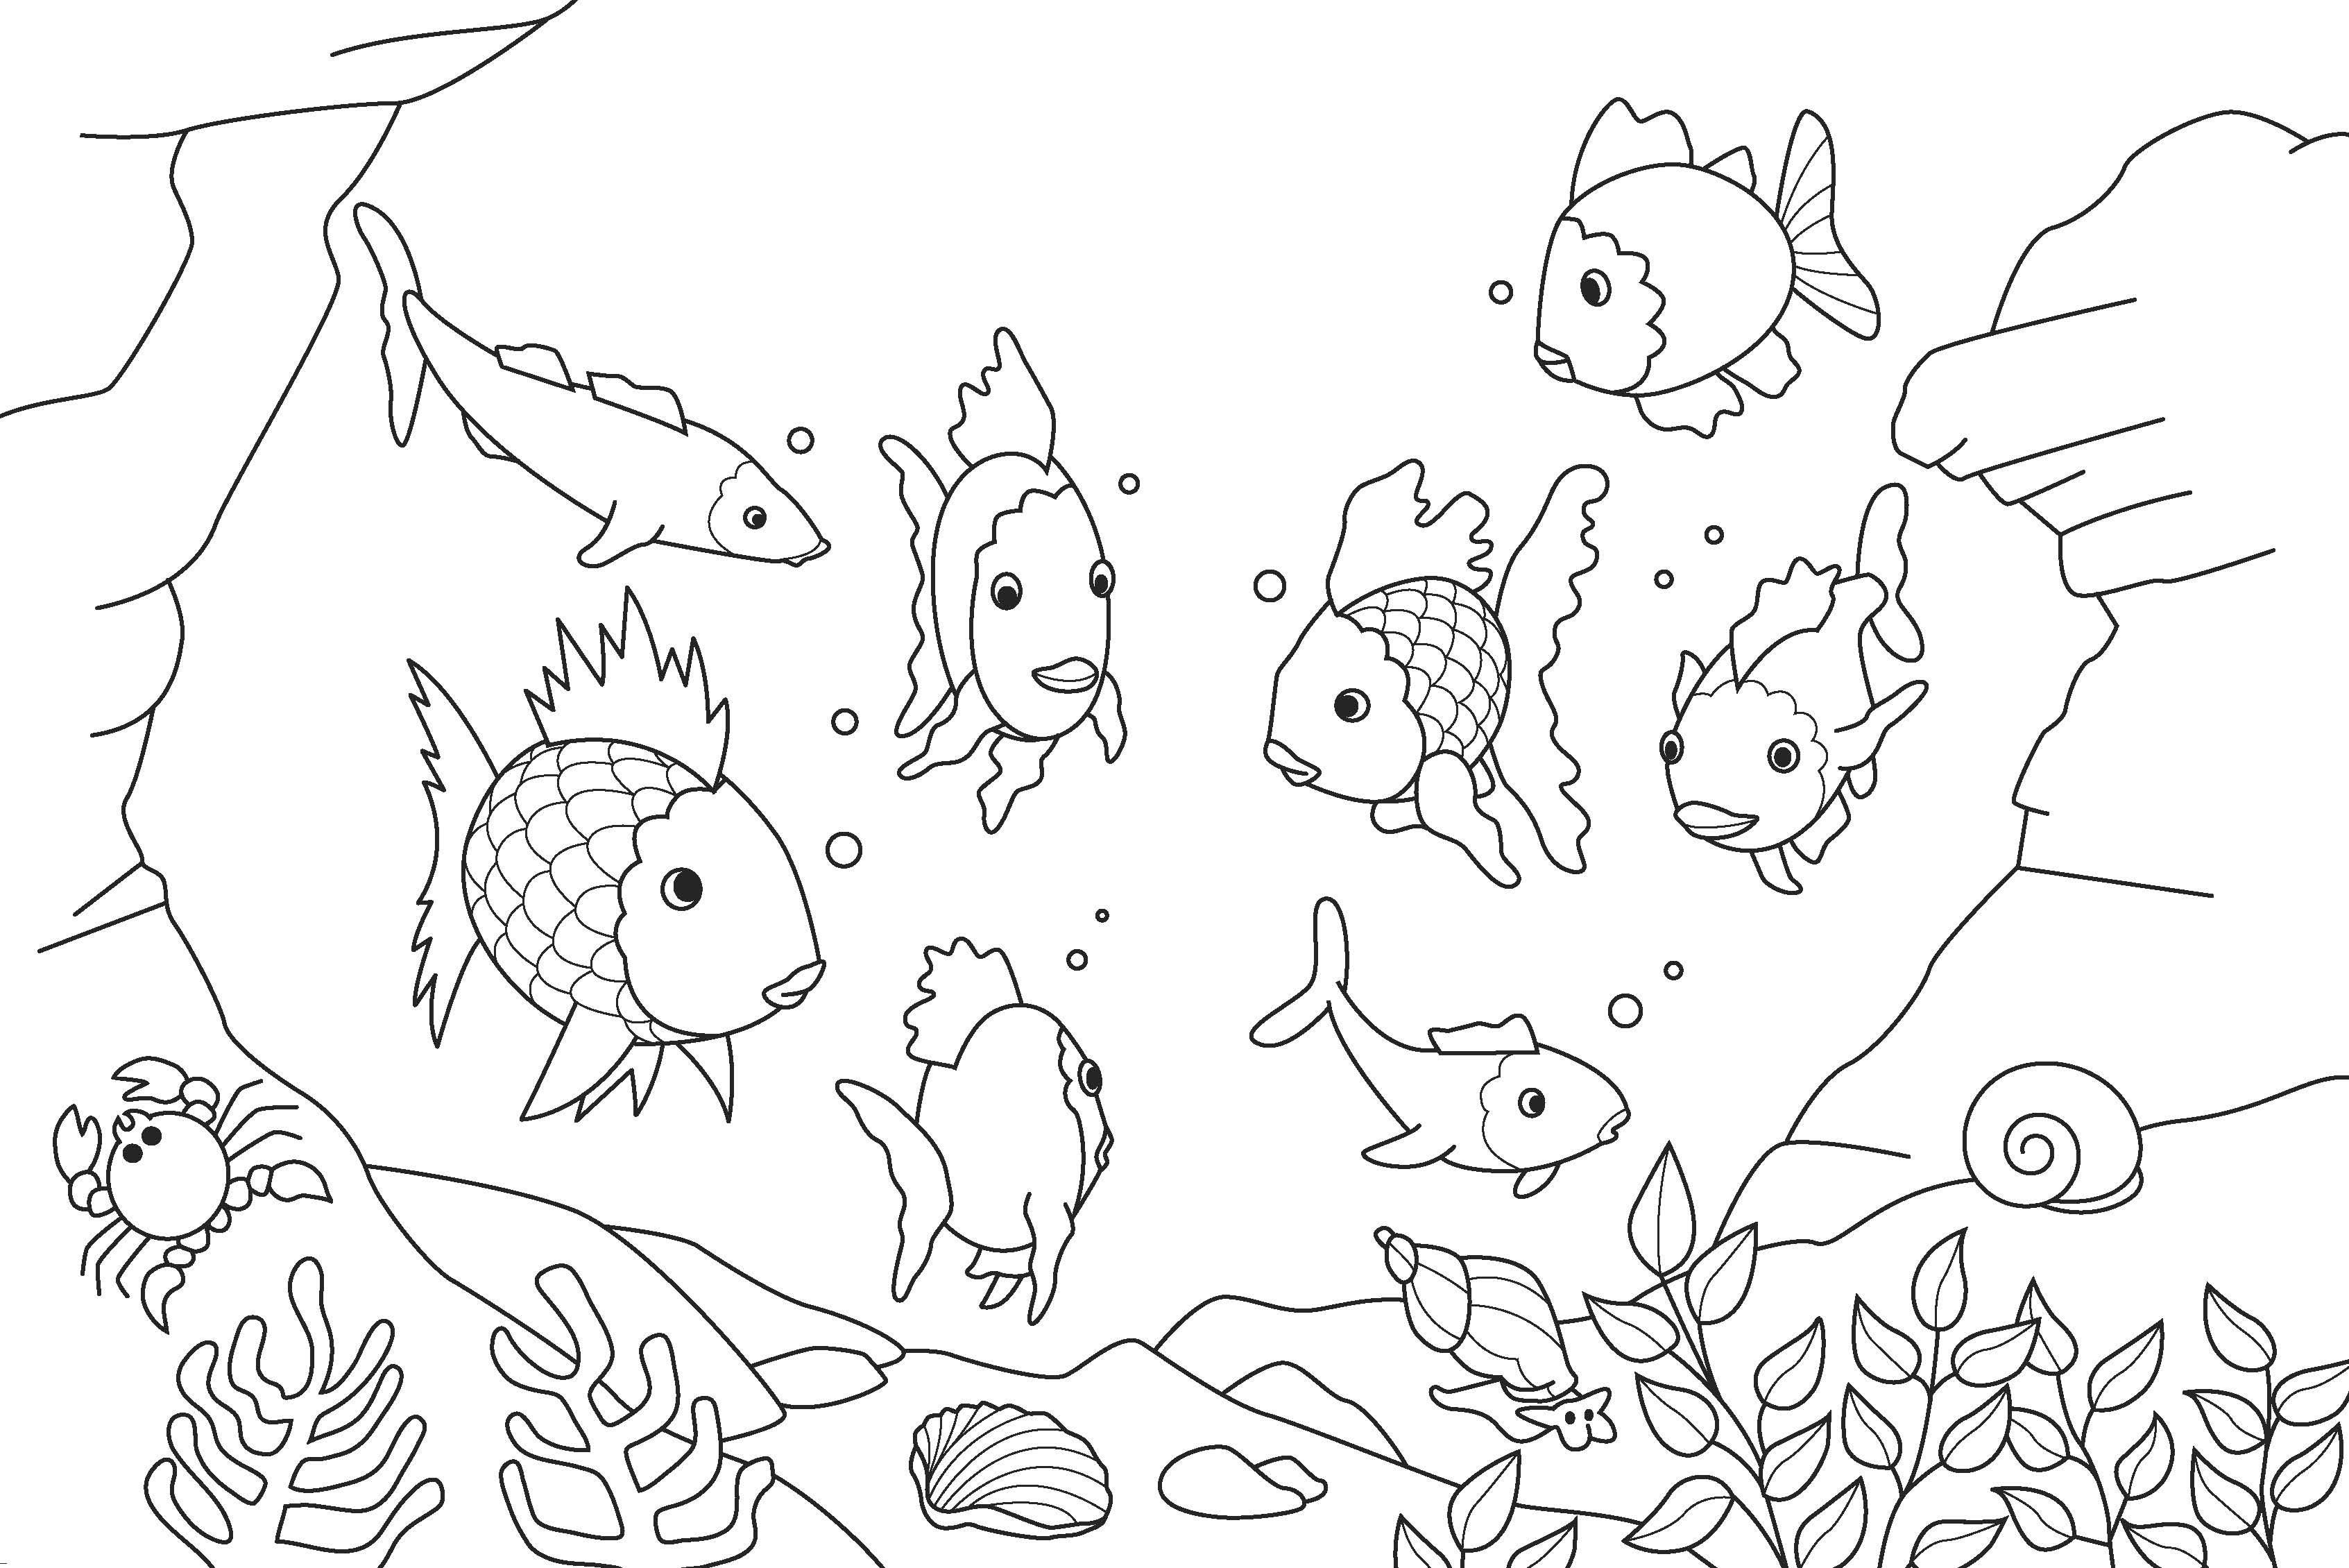 fish coloring pages kids - Coloring Page For Kids